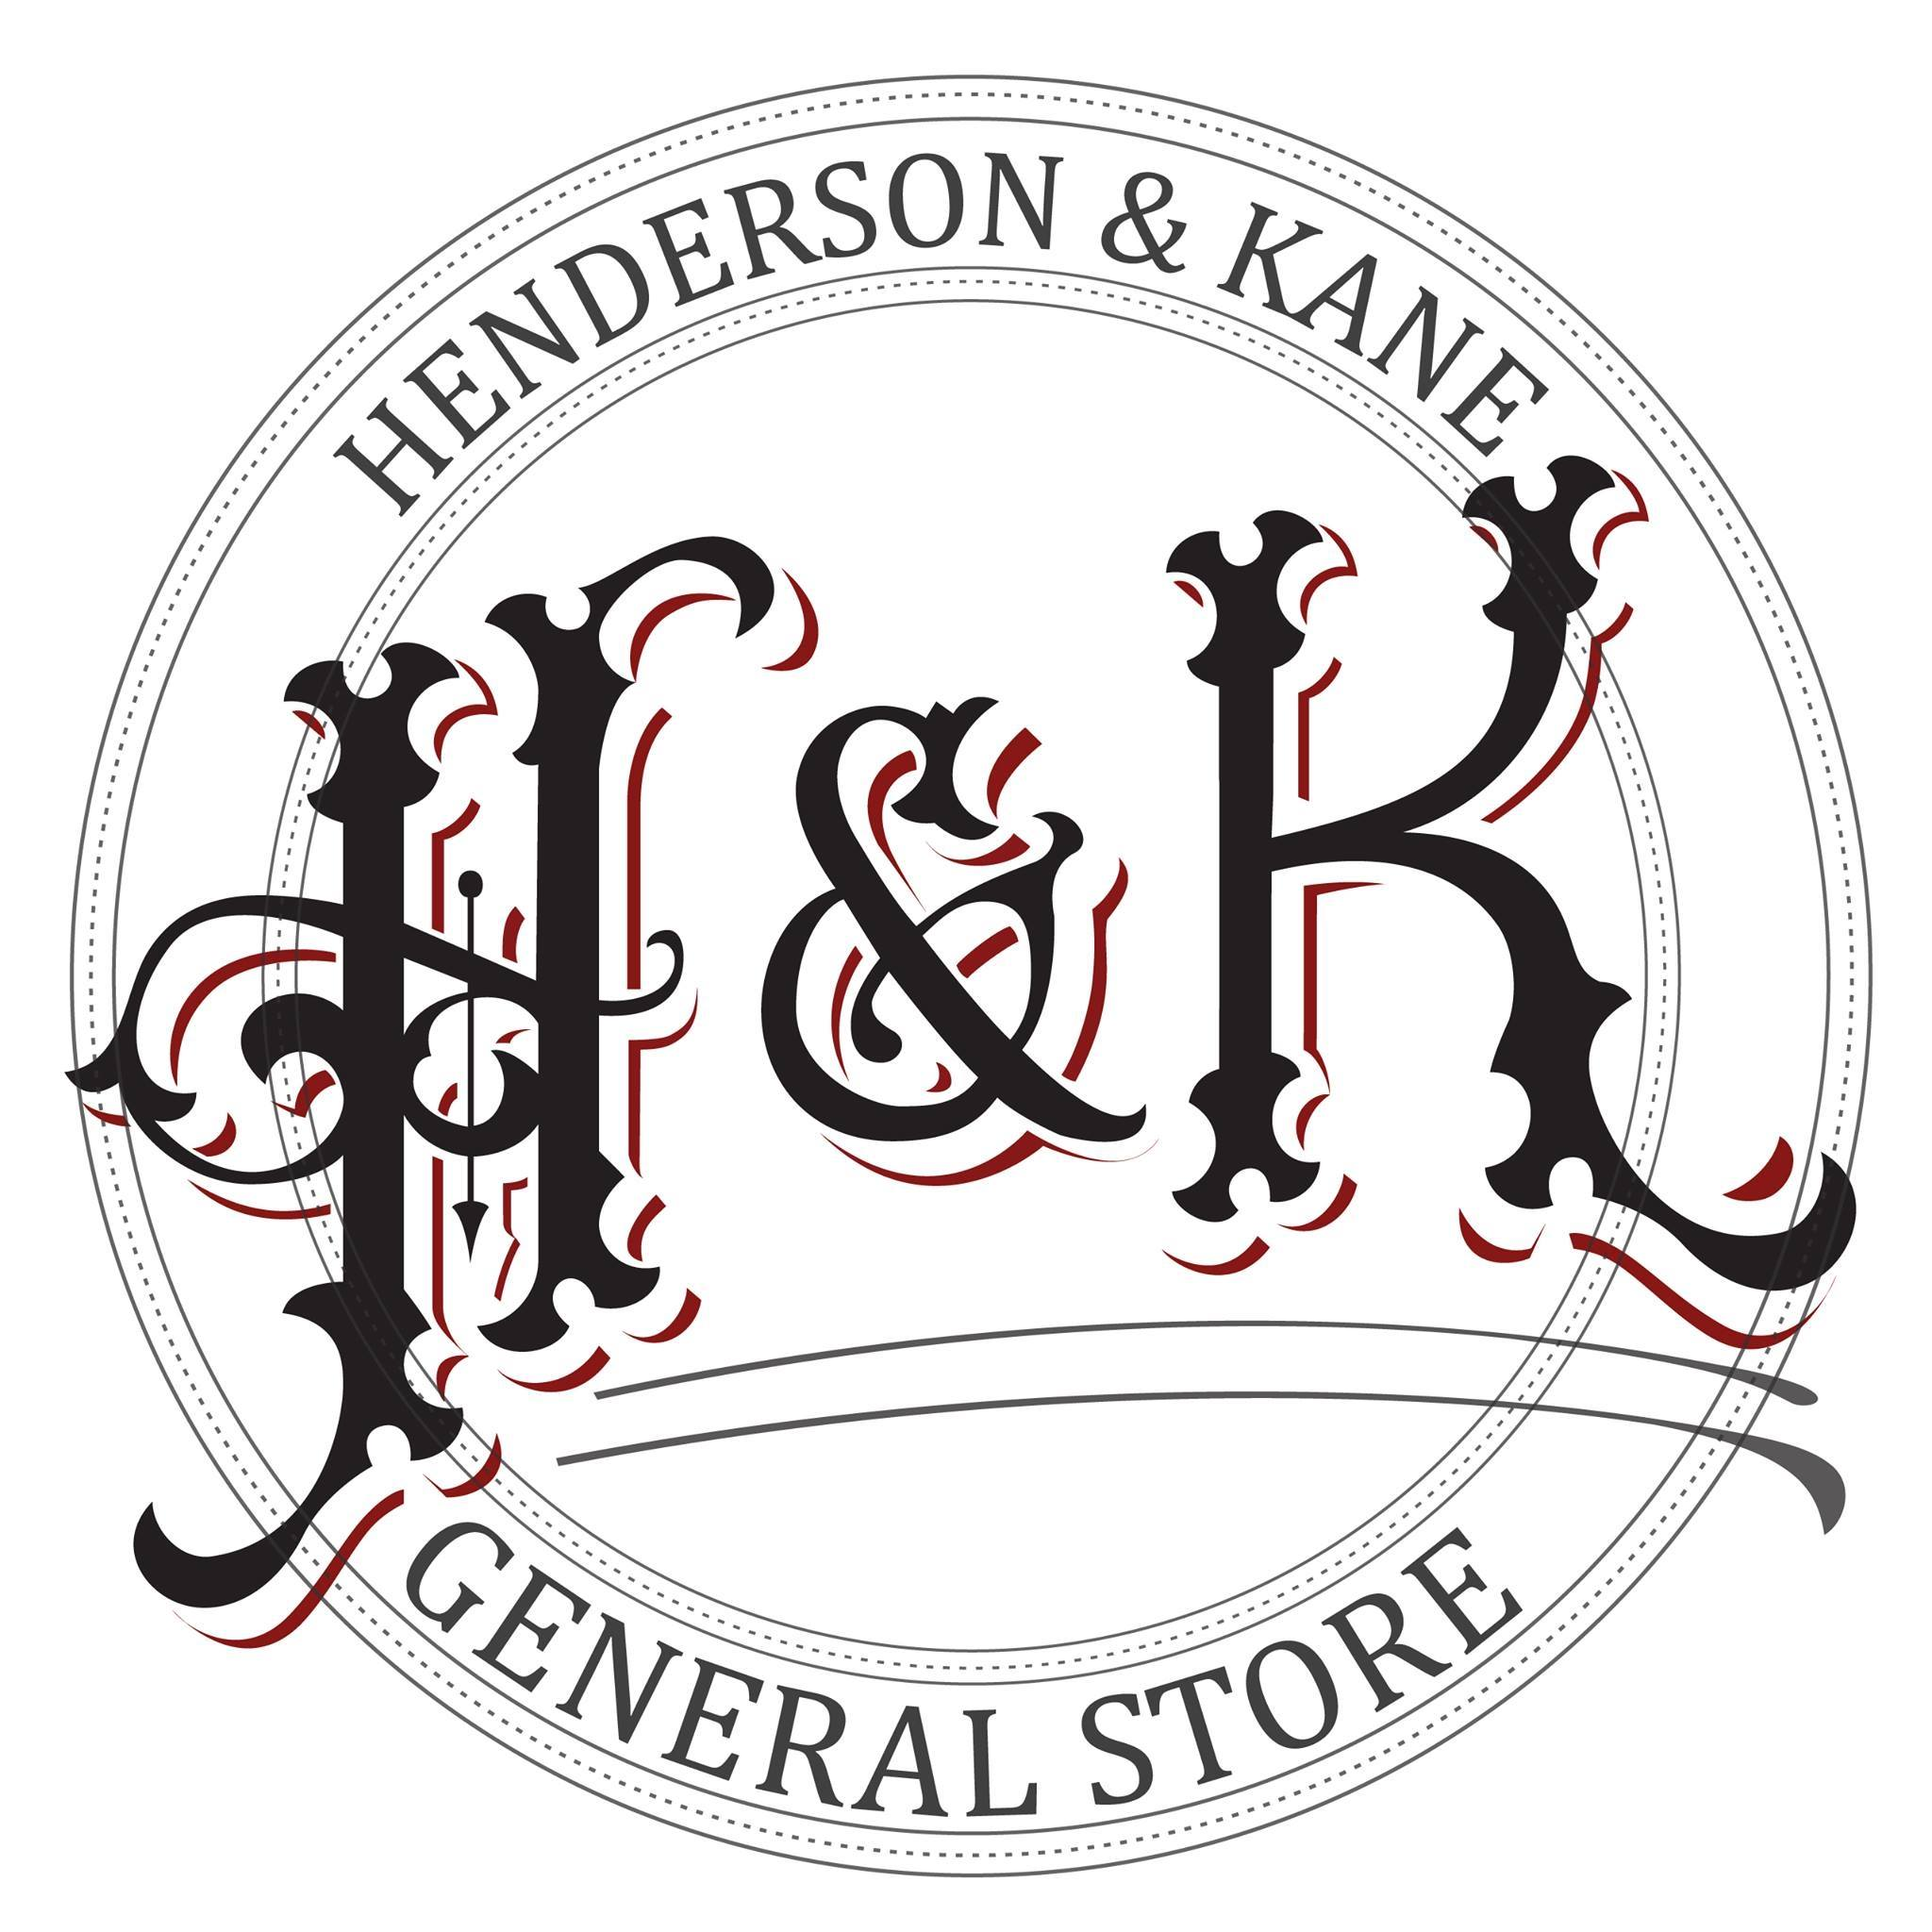 henderson-and-kane.jpg